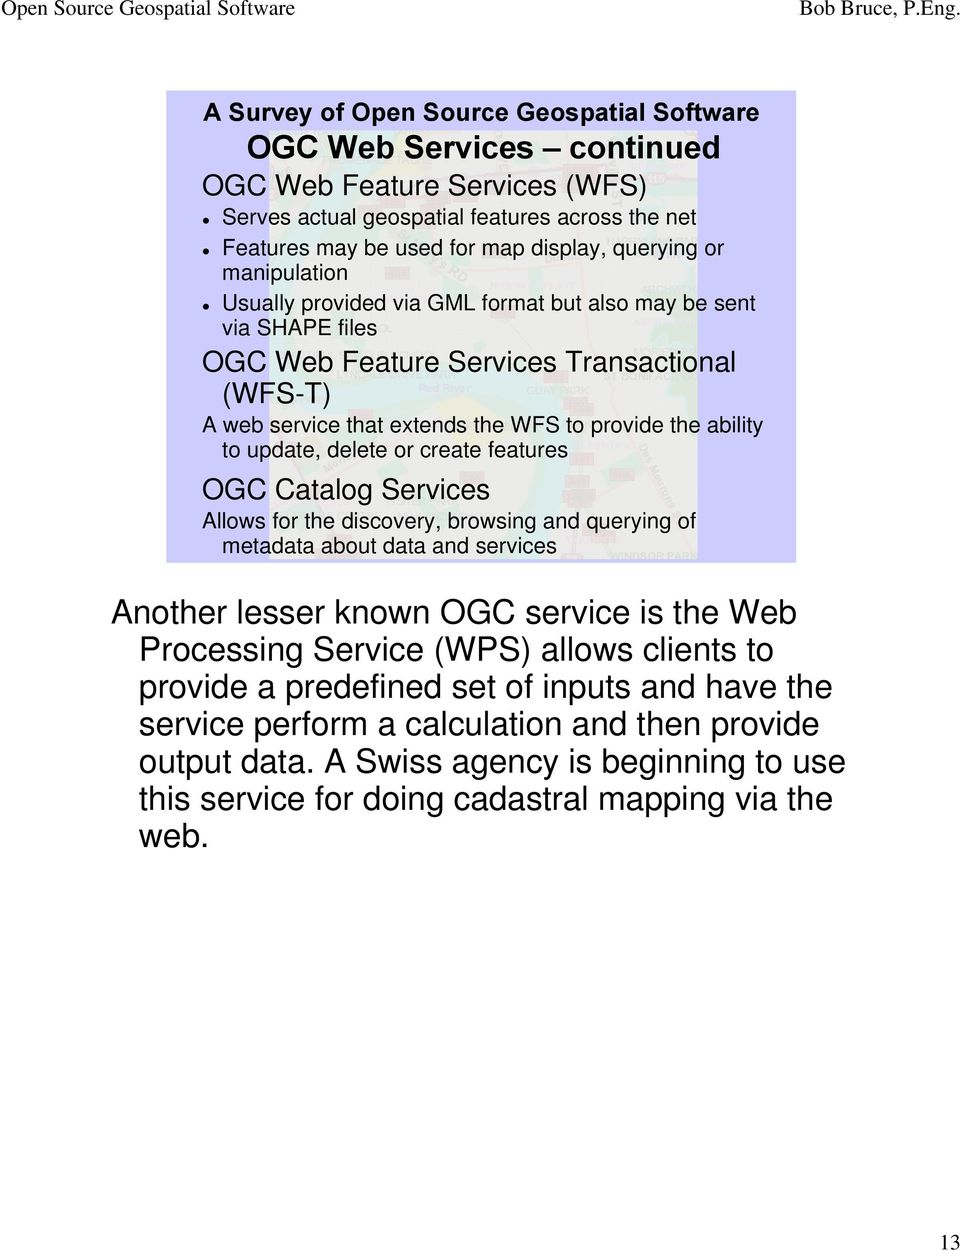 OGC Catalog Services Allows for the discovery, browsing and querying of metadata about data and services Another lesser known OGC service is the Web Processing Service (WPS) allows clients to